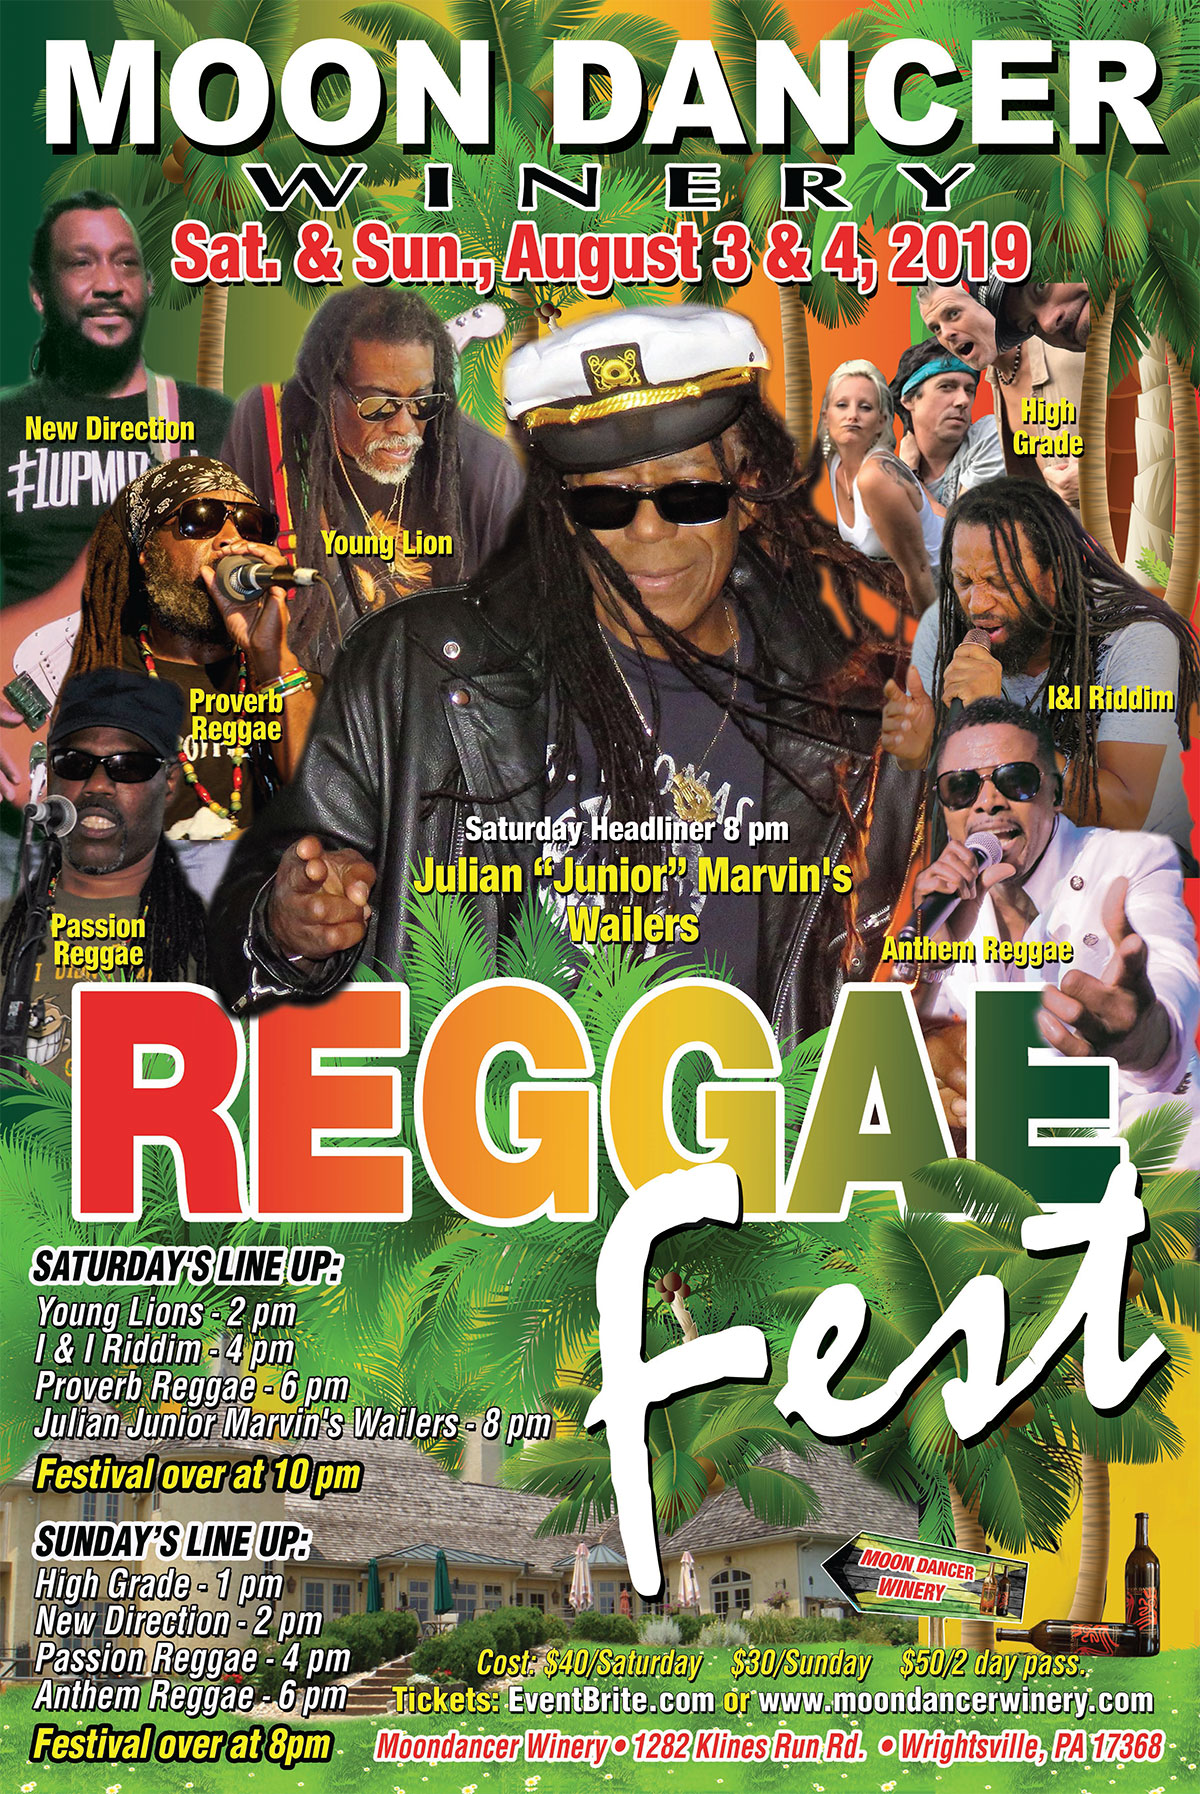 Poster with images of bands playing at Reggae Festival